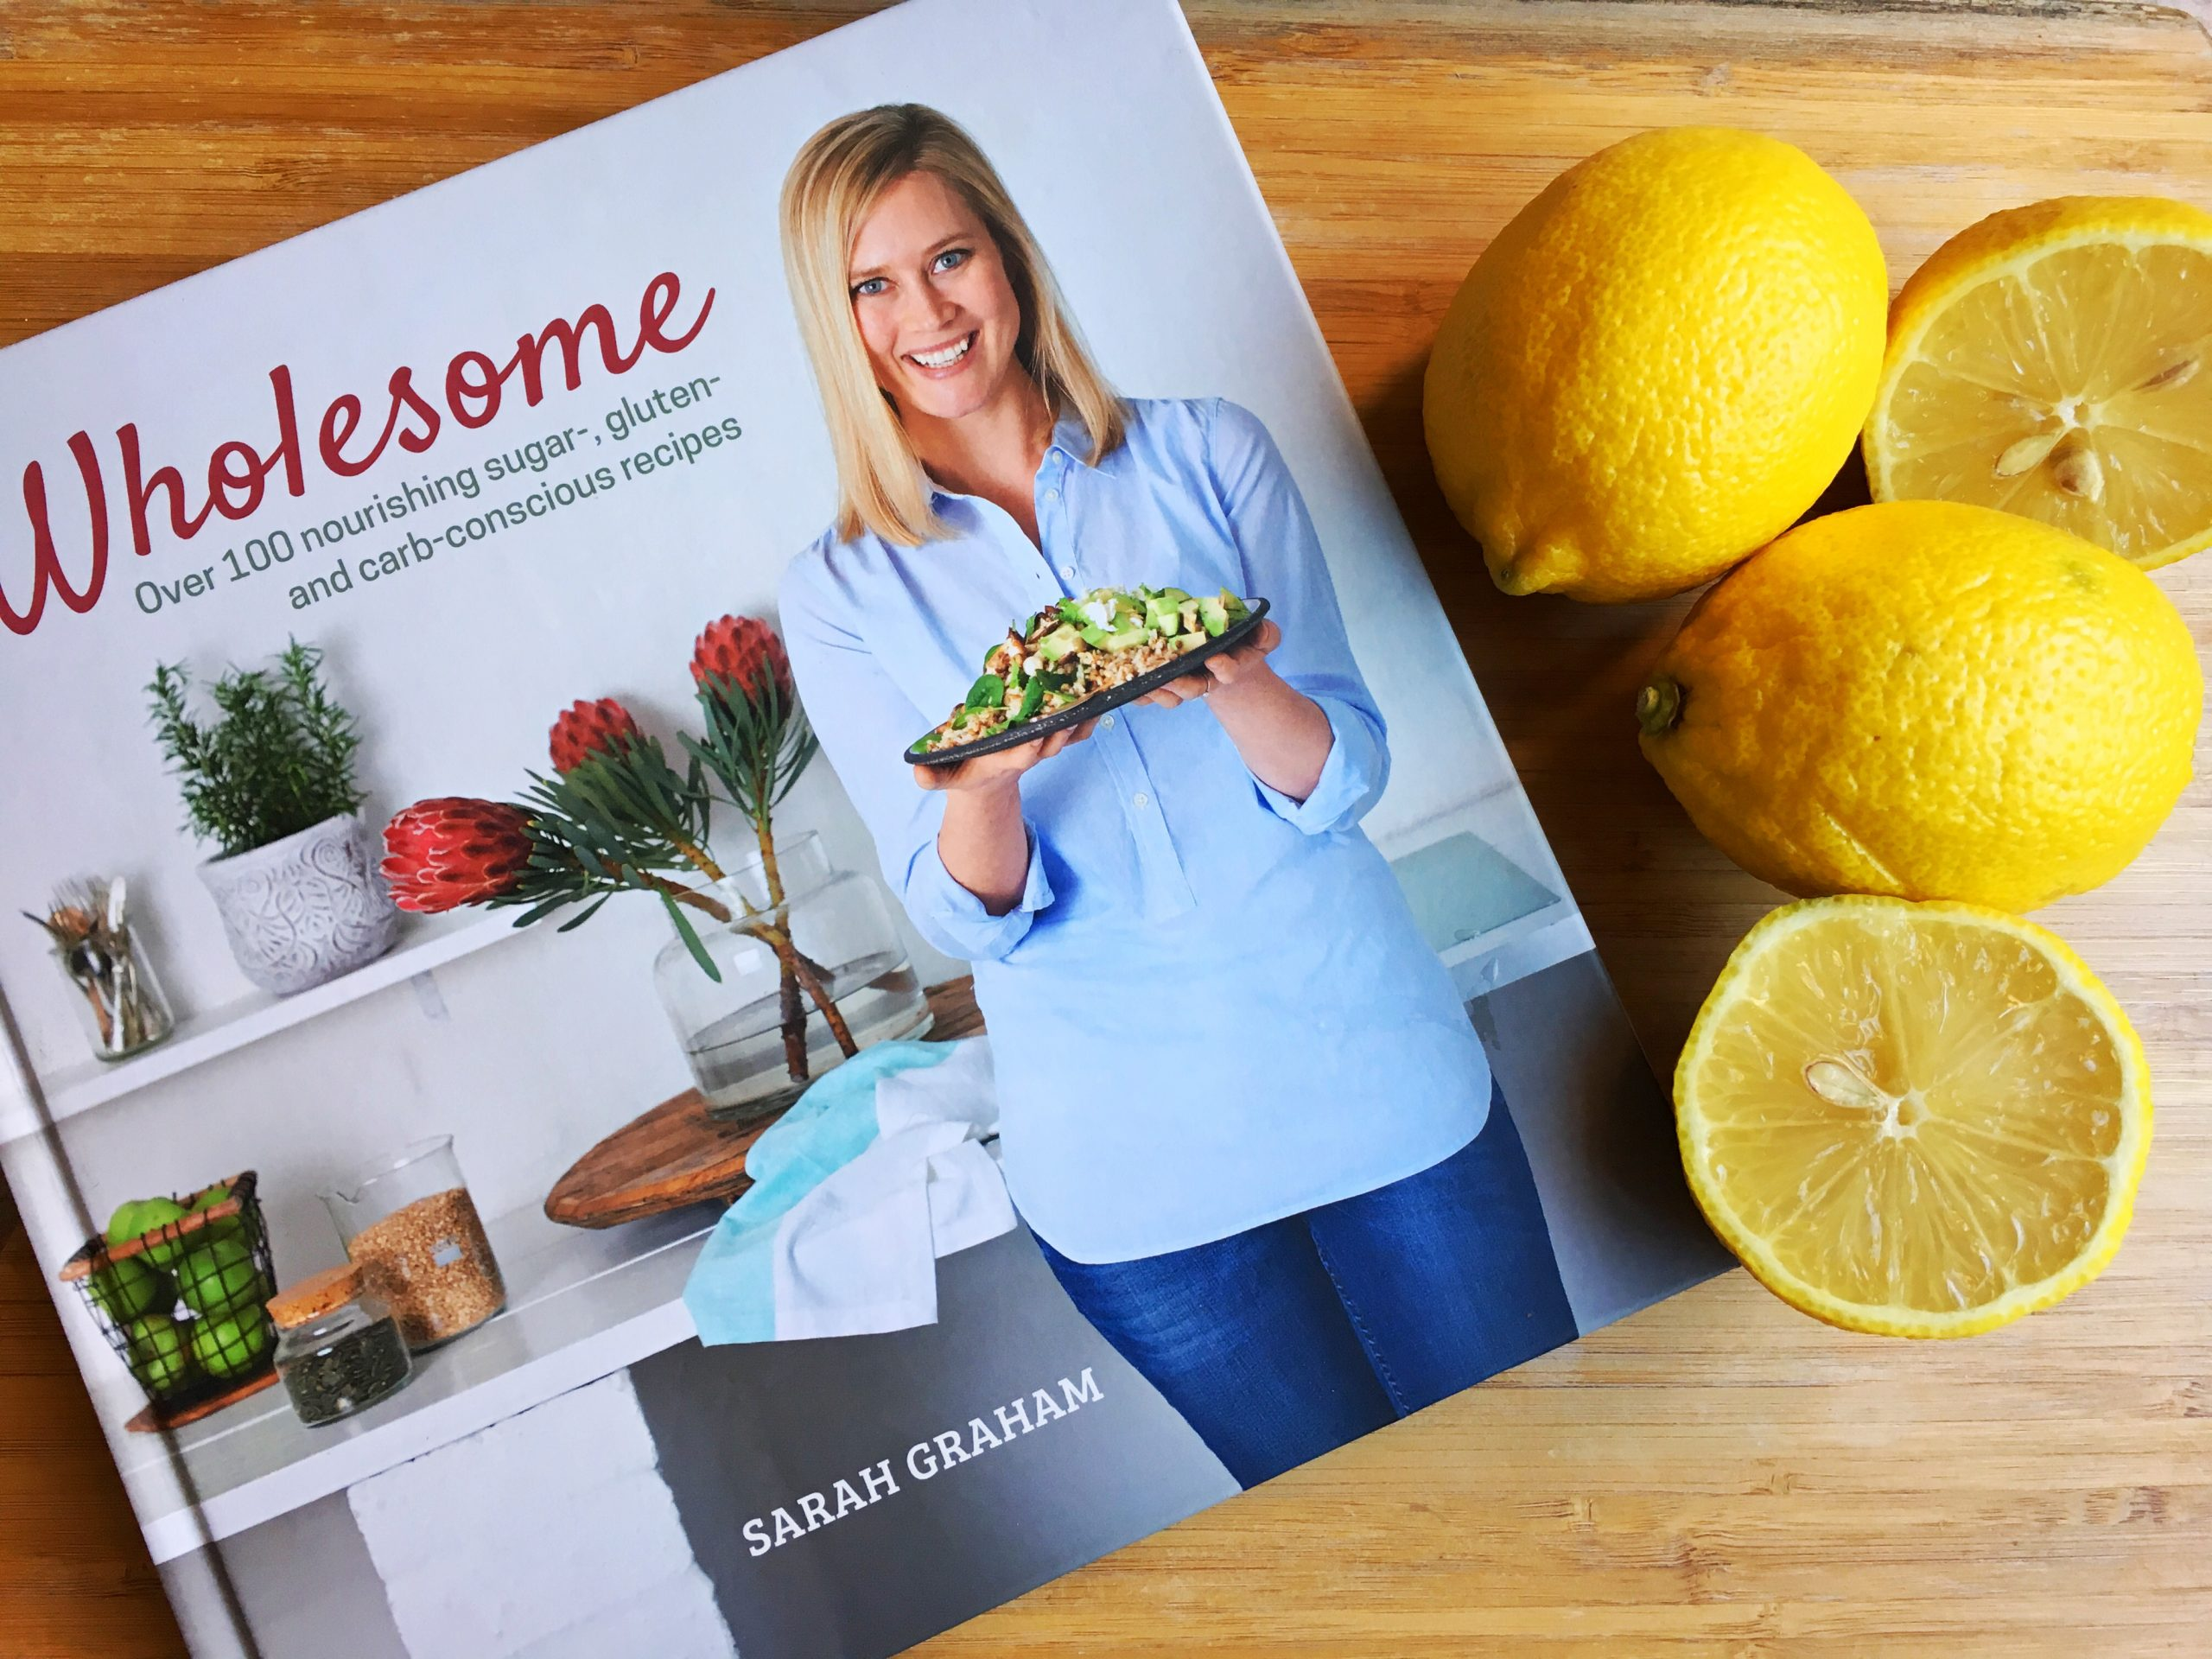 Fresh Wholesome recipe ideas with Sarah Graham